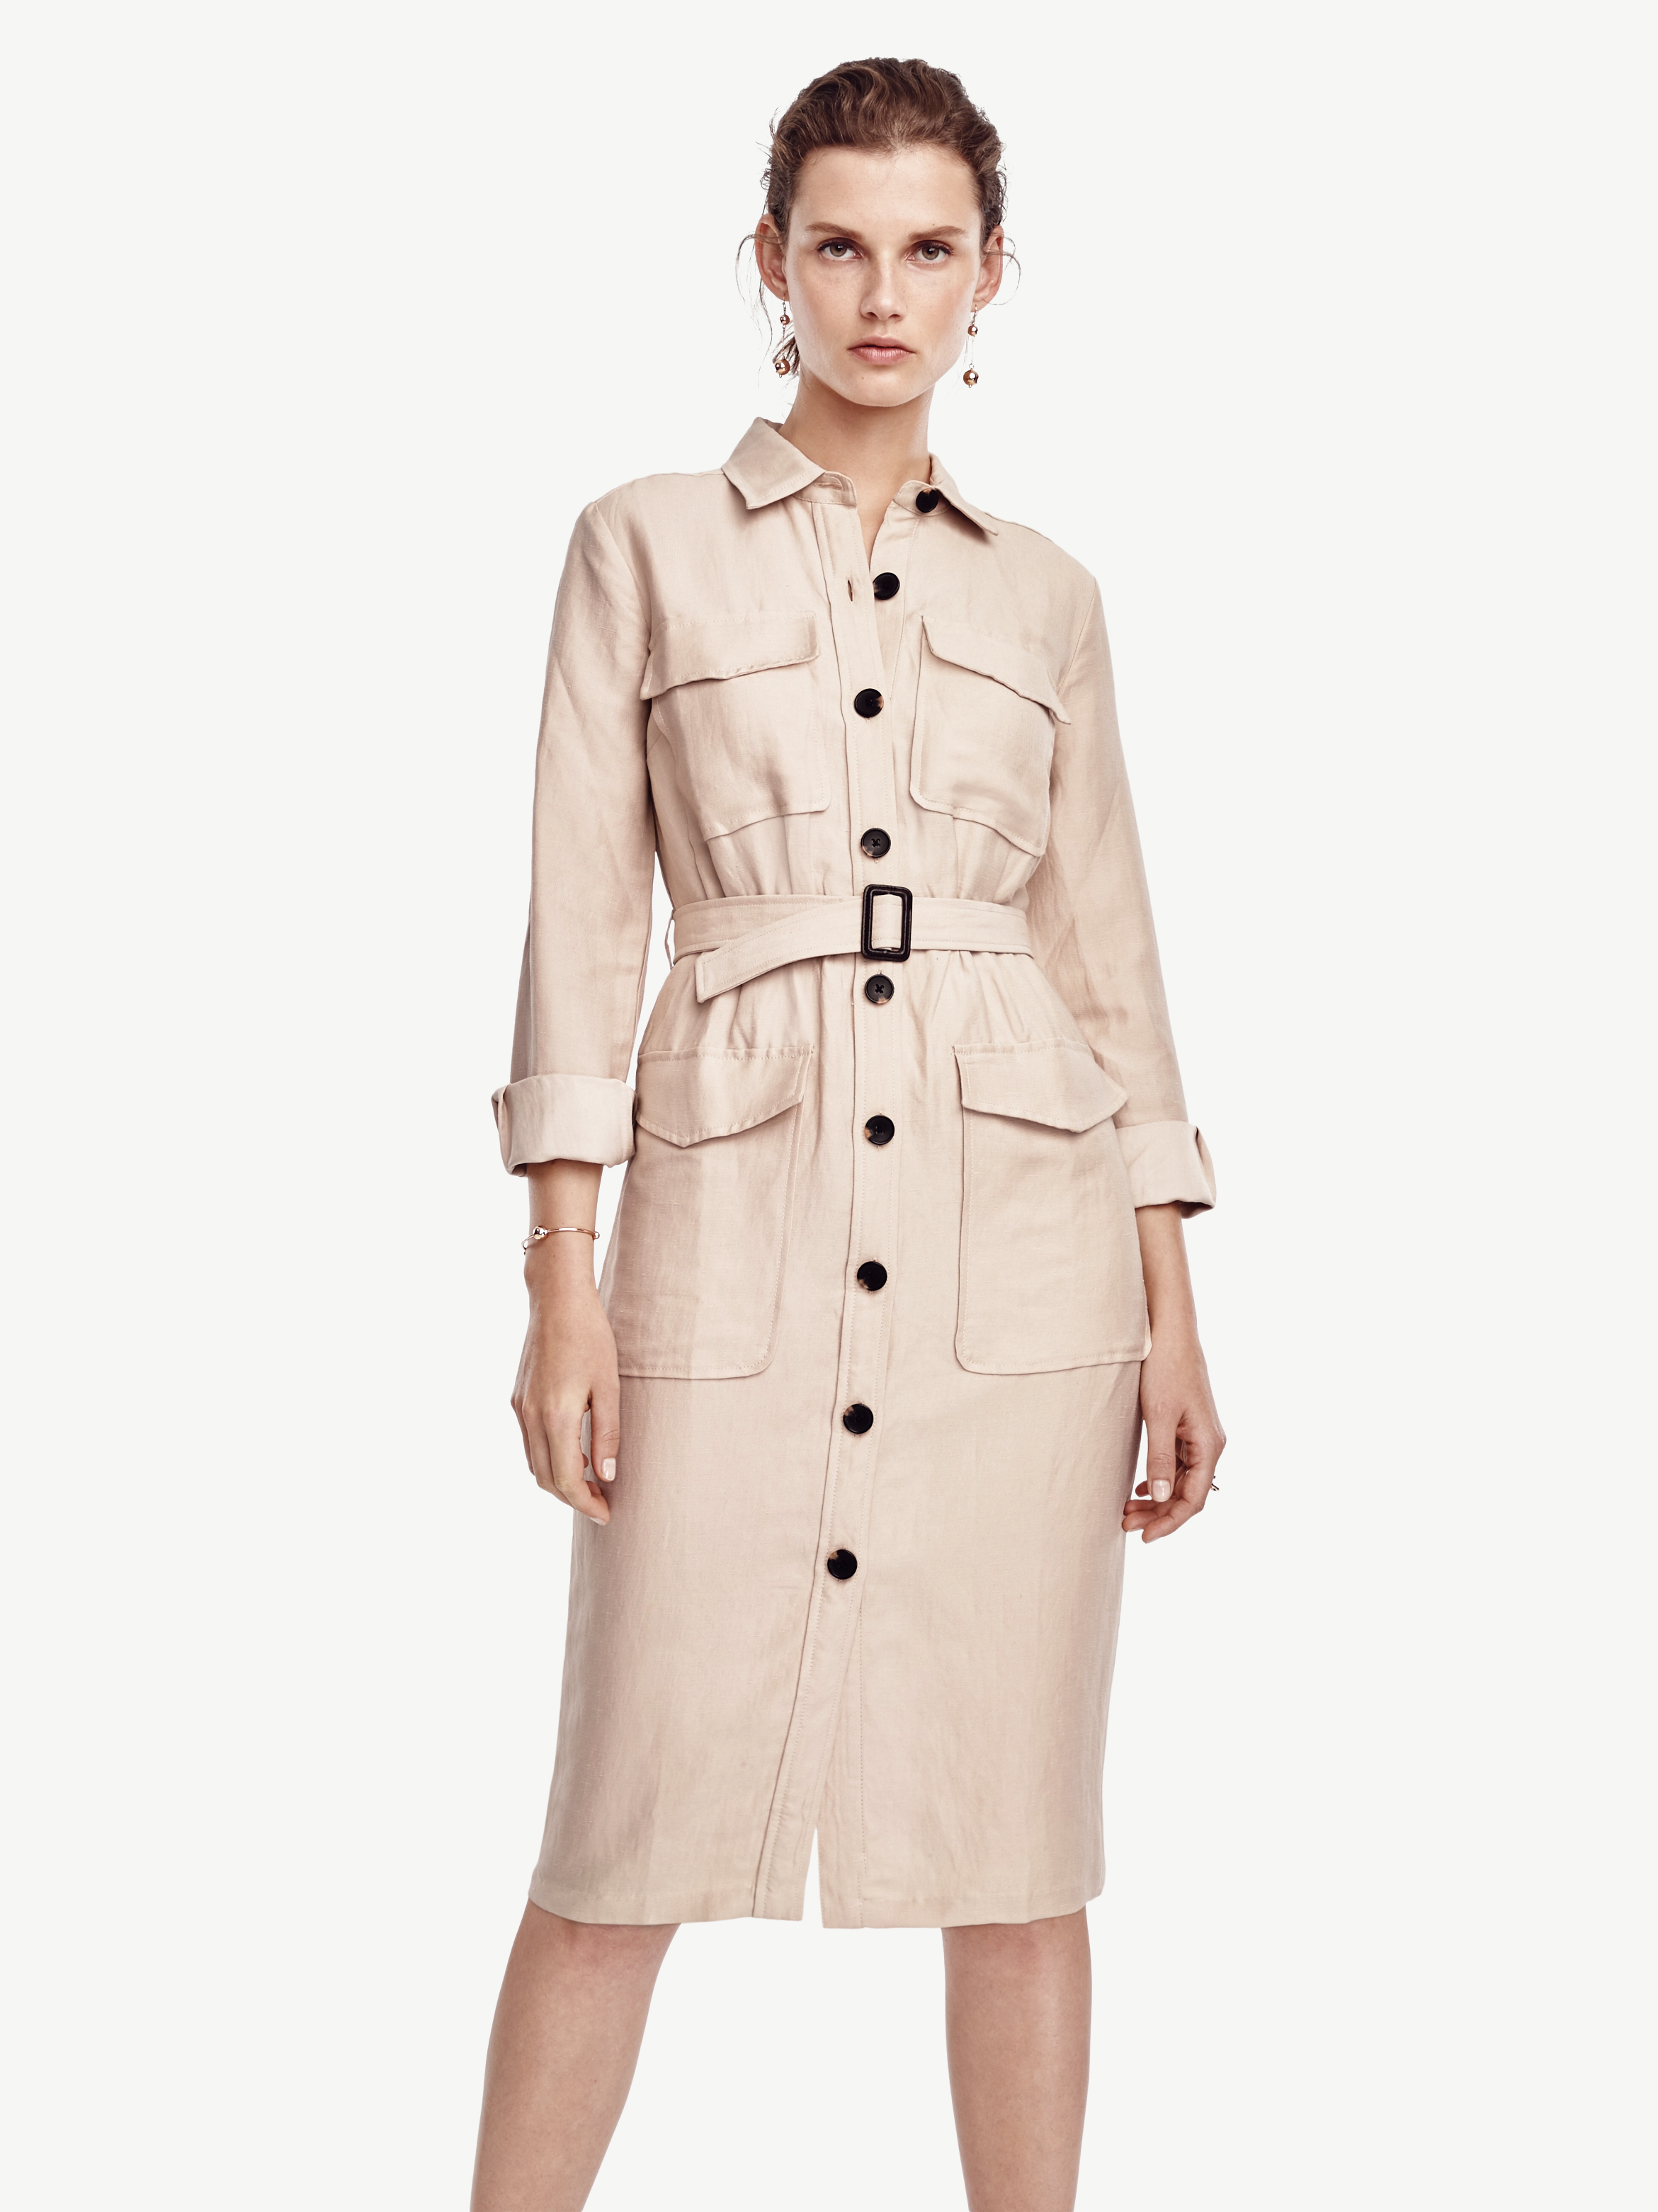 ad5386701981 Ann Taylor Safari Trench Dress in Natural - Lyst